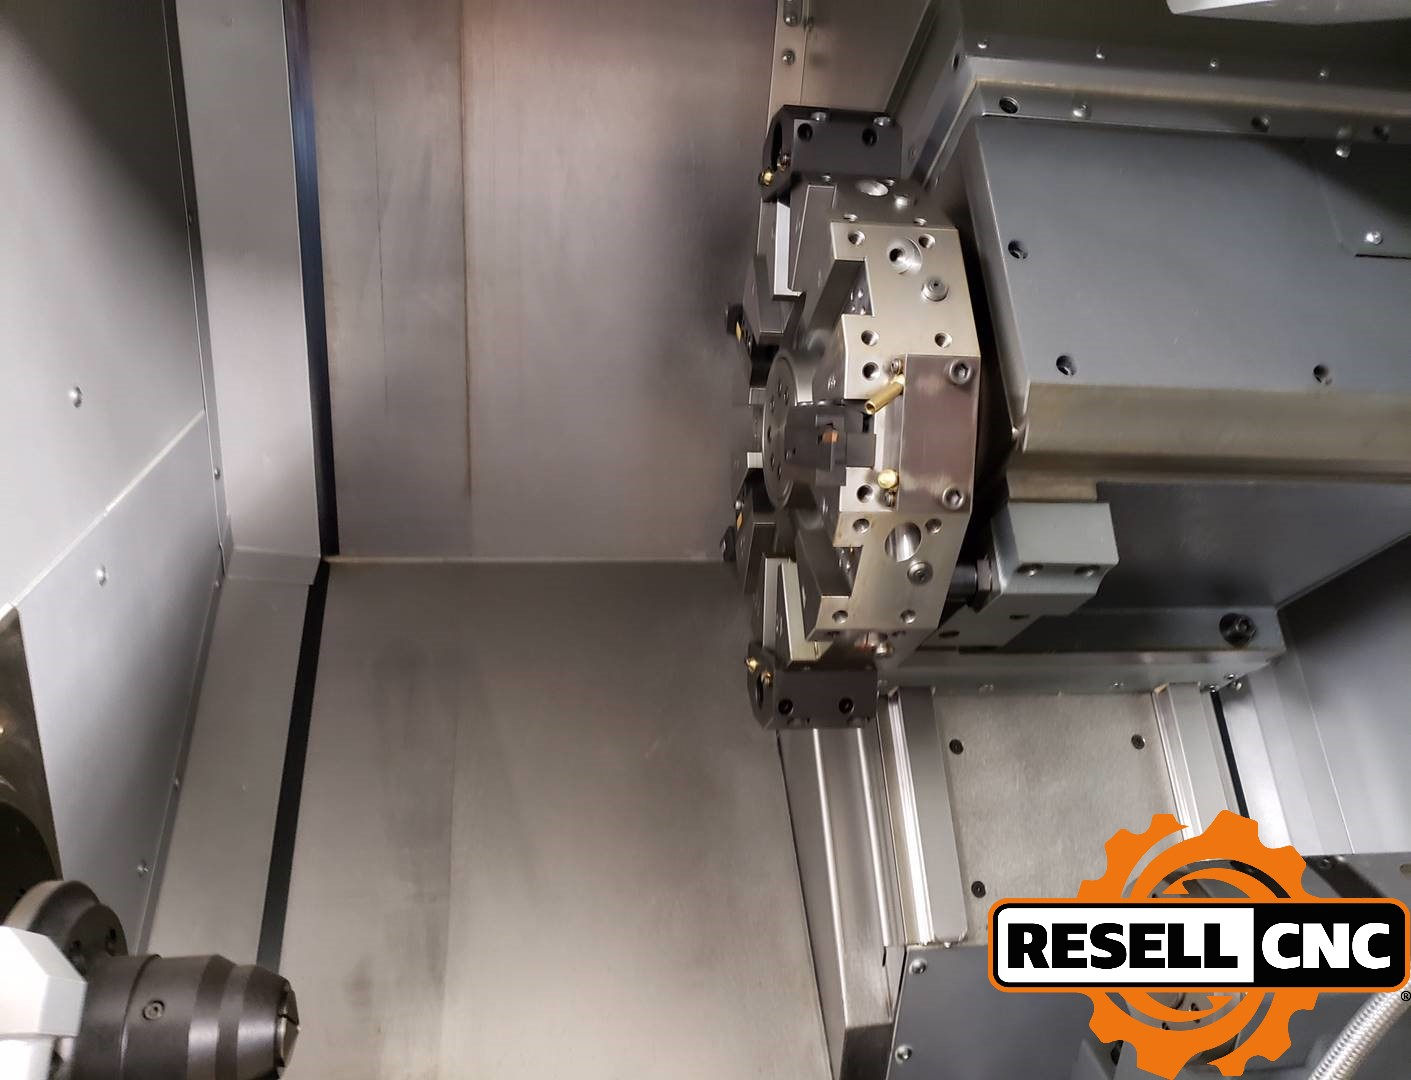 Haas ST-10 CNC Lathes | Used CNC - Resell CNC